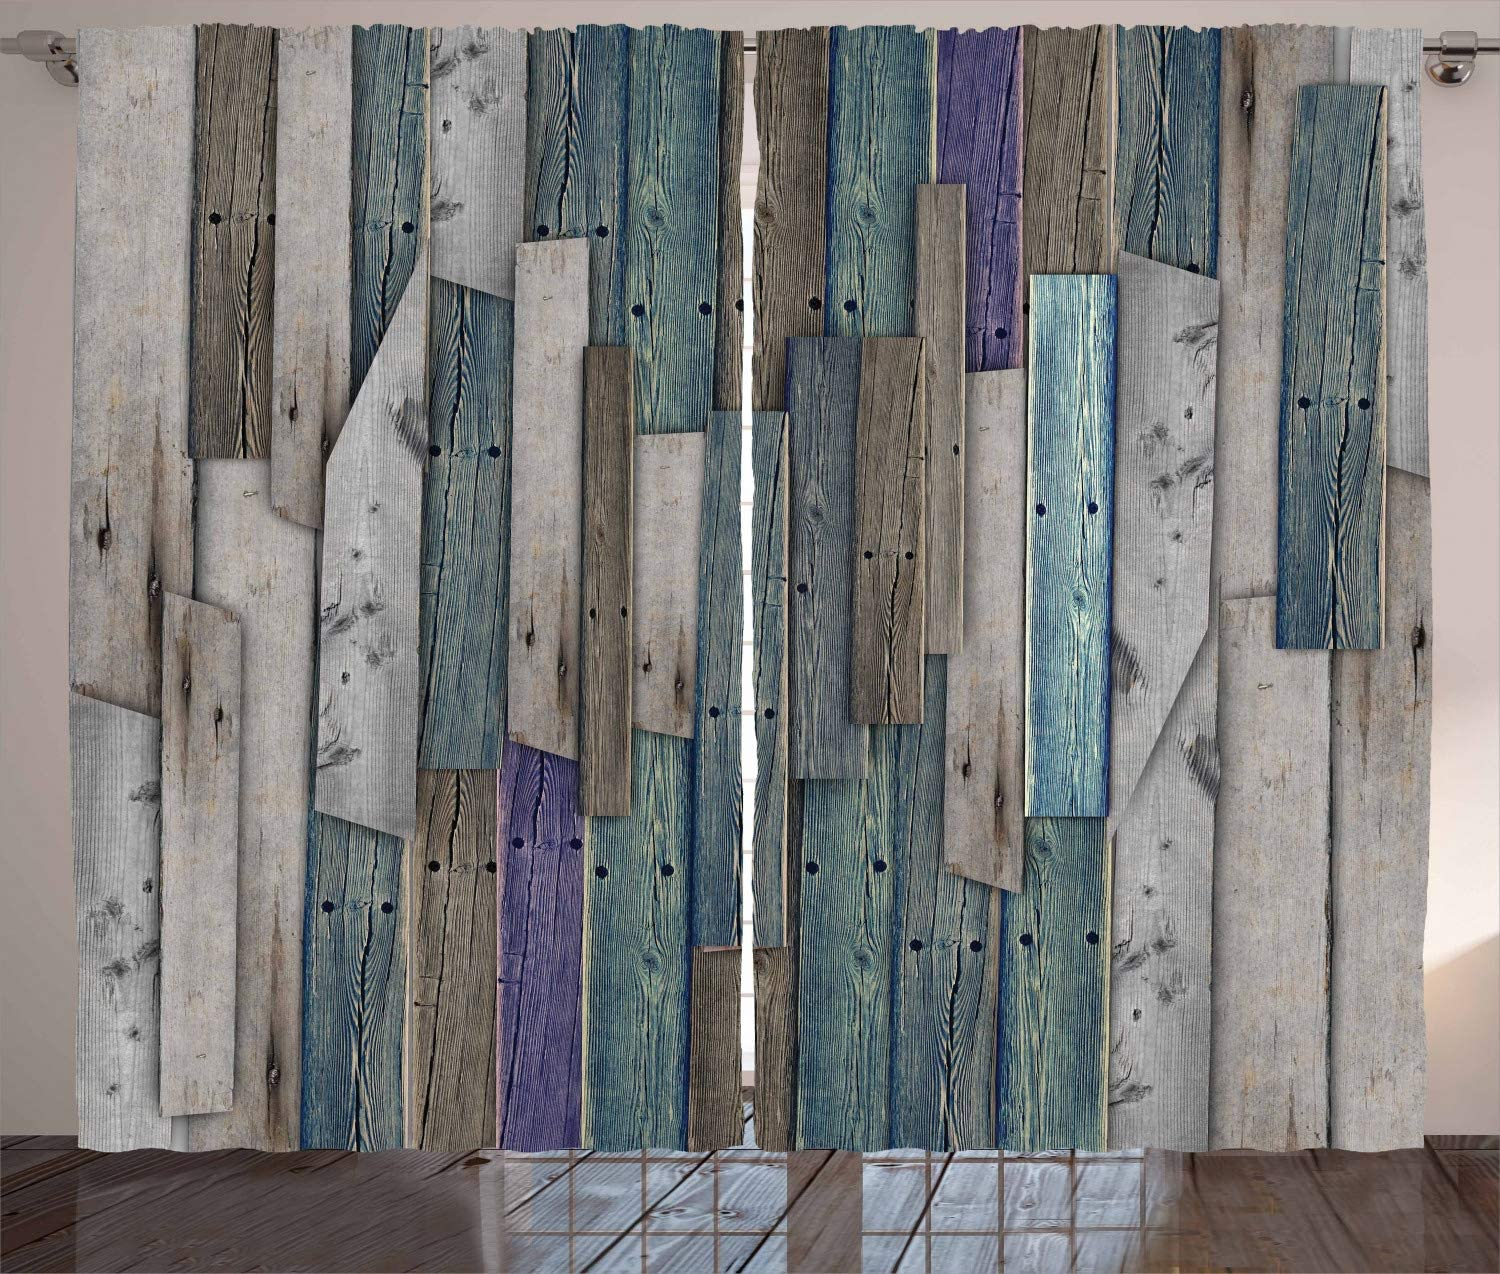 """Ambesonne Rustic Curtains, Image of Blue Grey Grunge Wood Planks Barn House Door Nails Country Life Theme Print, Living Room Bedroom Window Drapes 2 Panel Set, 108"""" X 63"""", Teal Purple"""